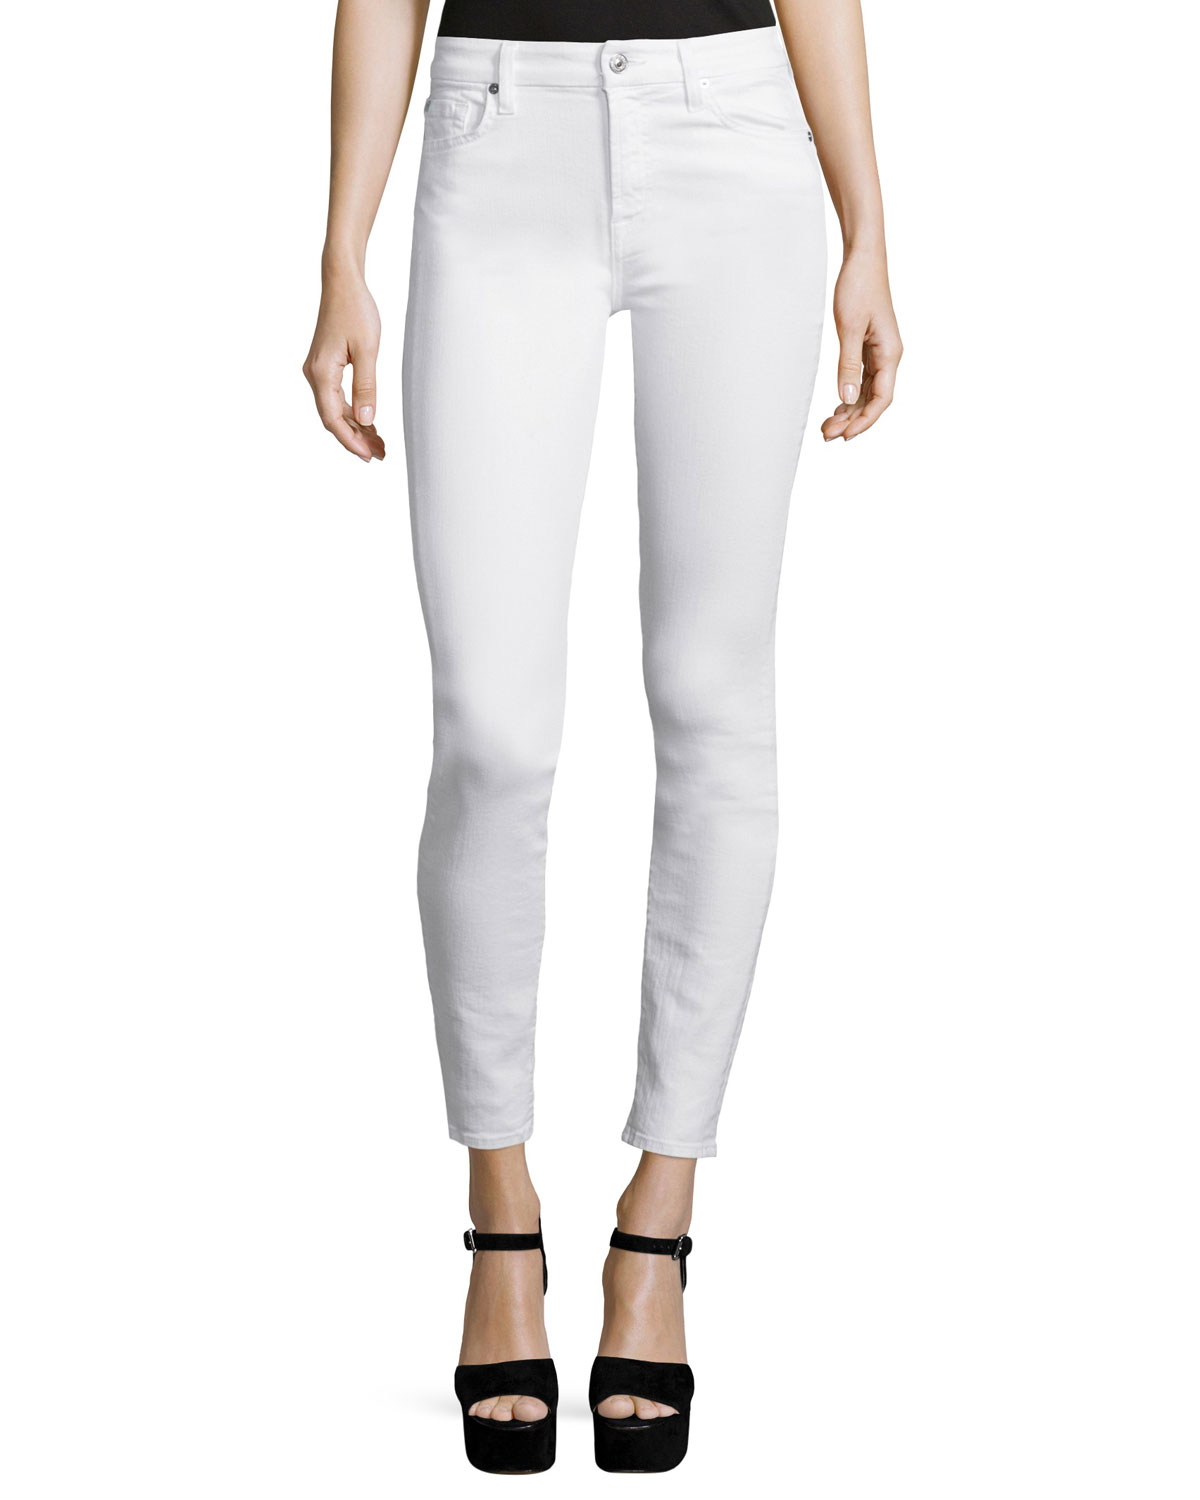 7 For All Mankind The Skinny Ankle Jeans, White, Size: 31